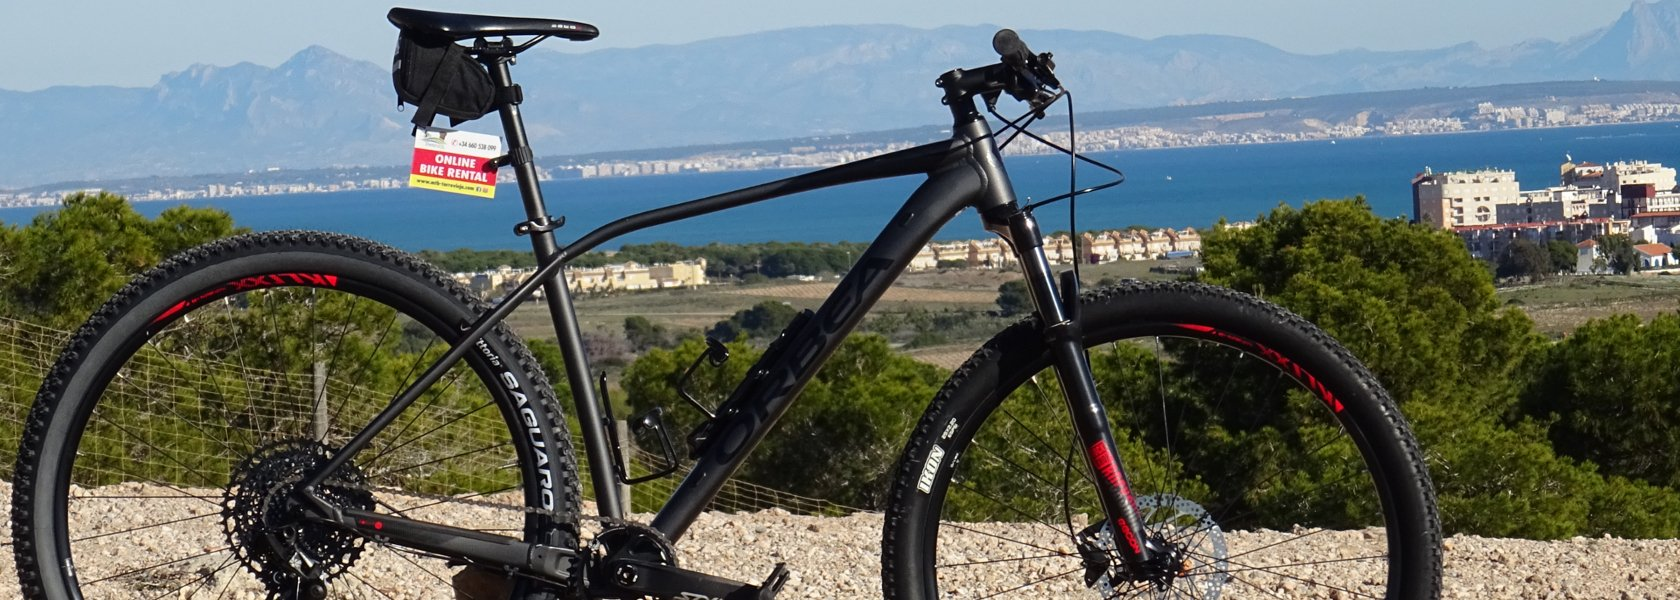 MTB Torrevieja bike rental